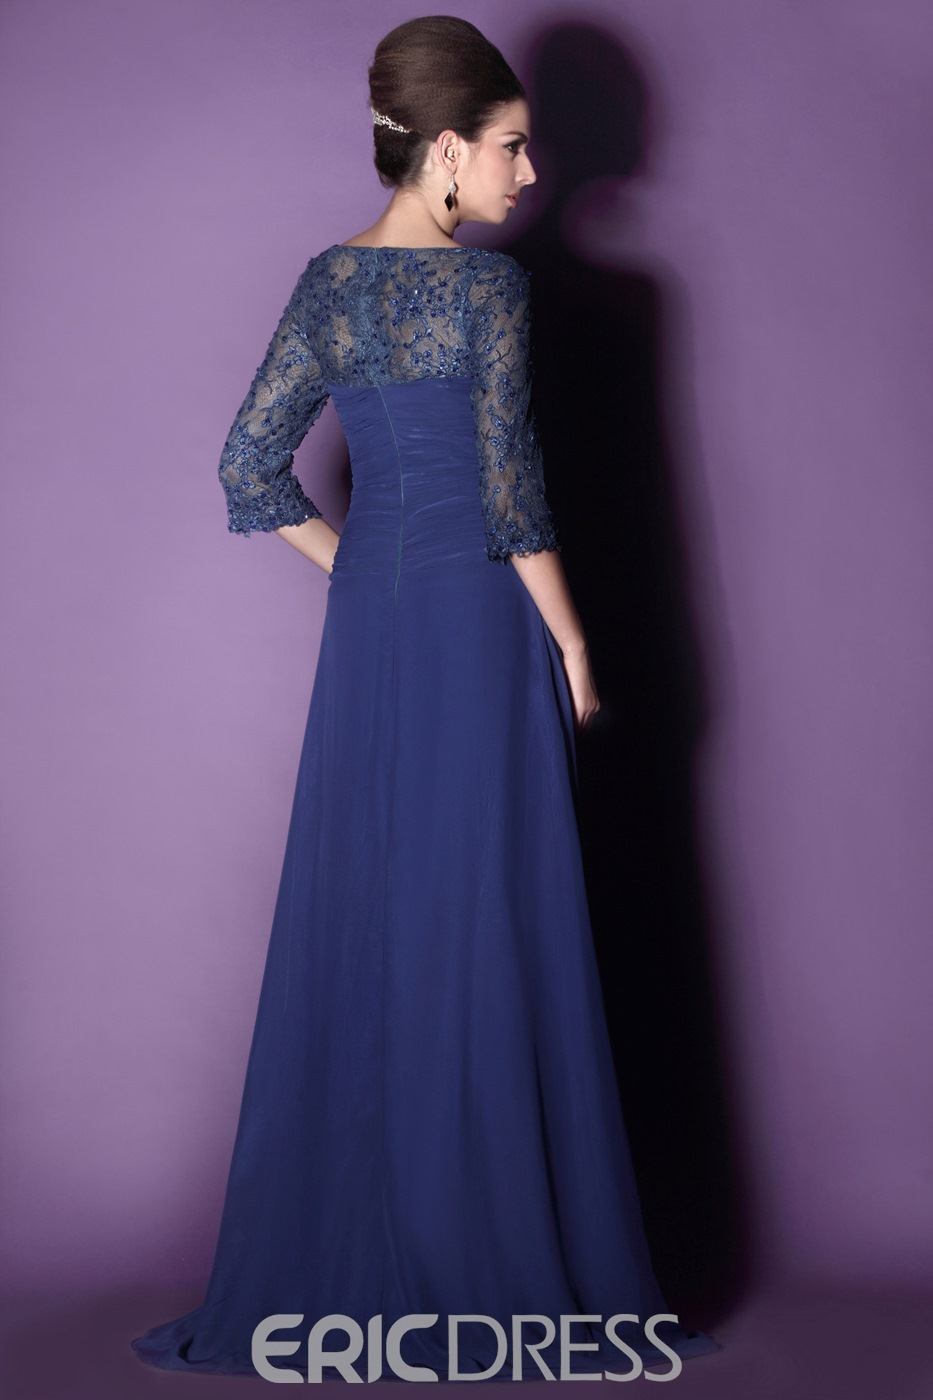 Gorgeous Lace A-Line Sweetheart Neckline 3/4-Sleeves Mother of the Bride Dress With Jacket/Shawl